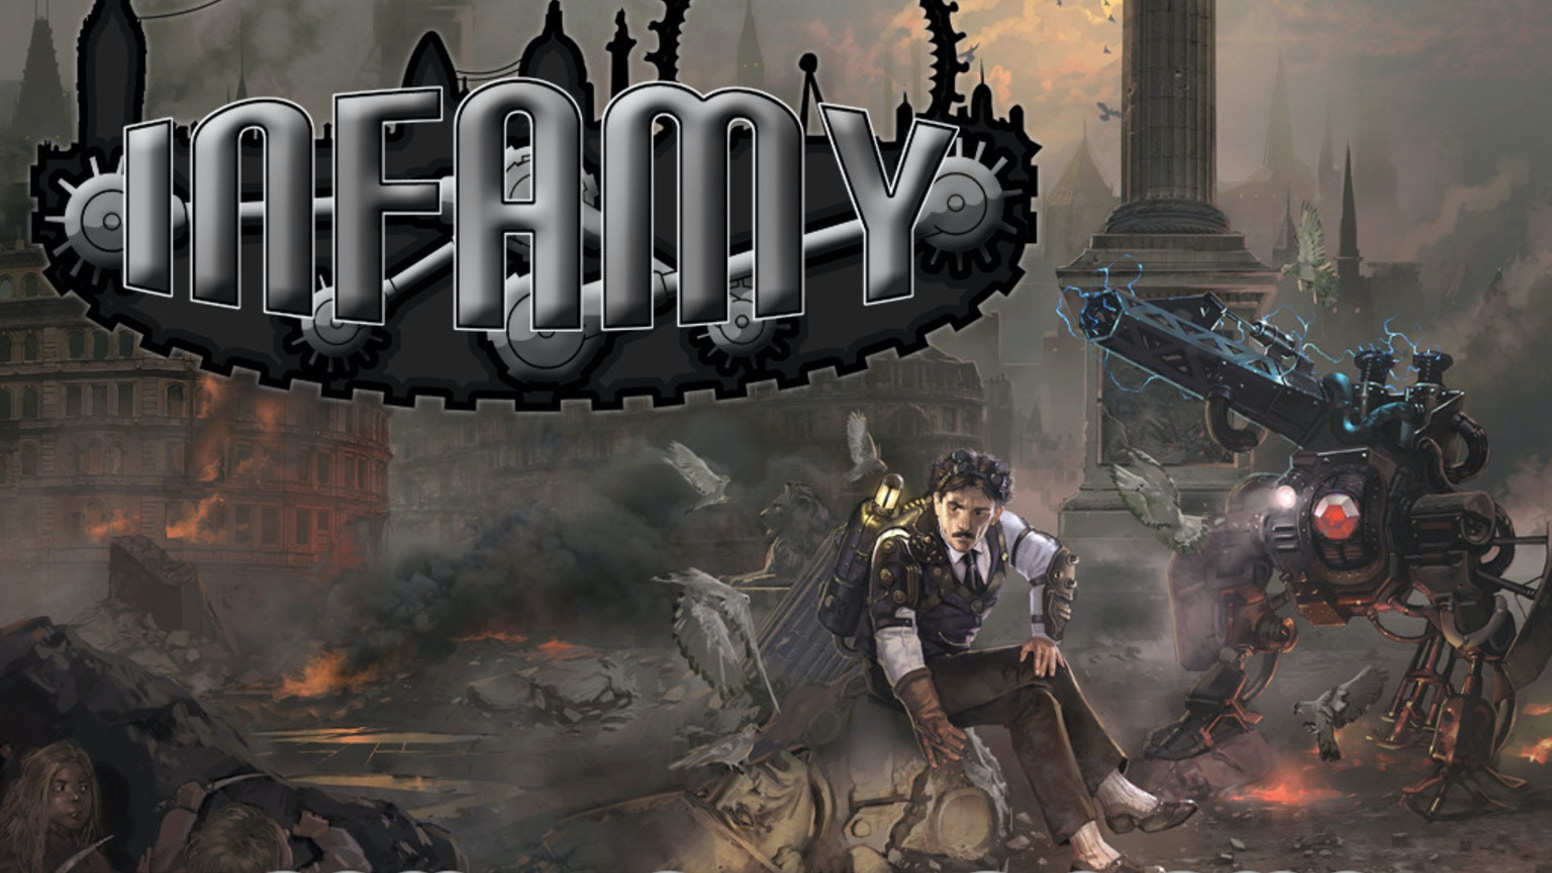 An action-packed skirmish game and range of steampunk miniatures. Join the revolution and battle across an alternate Victorian London!